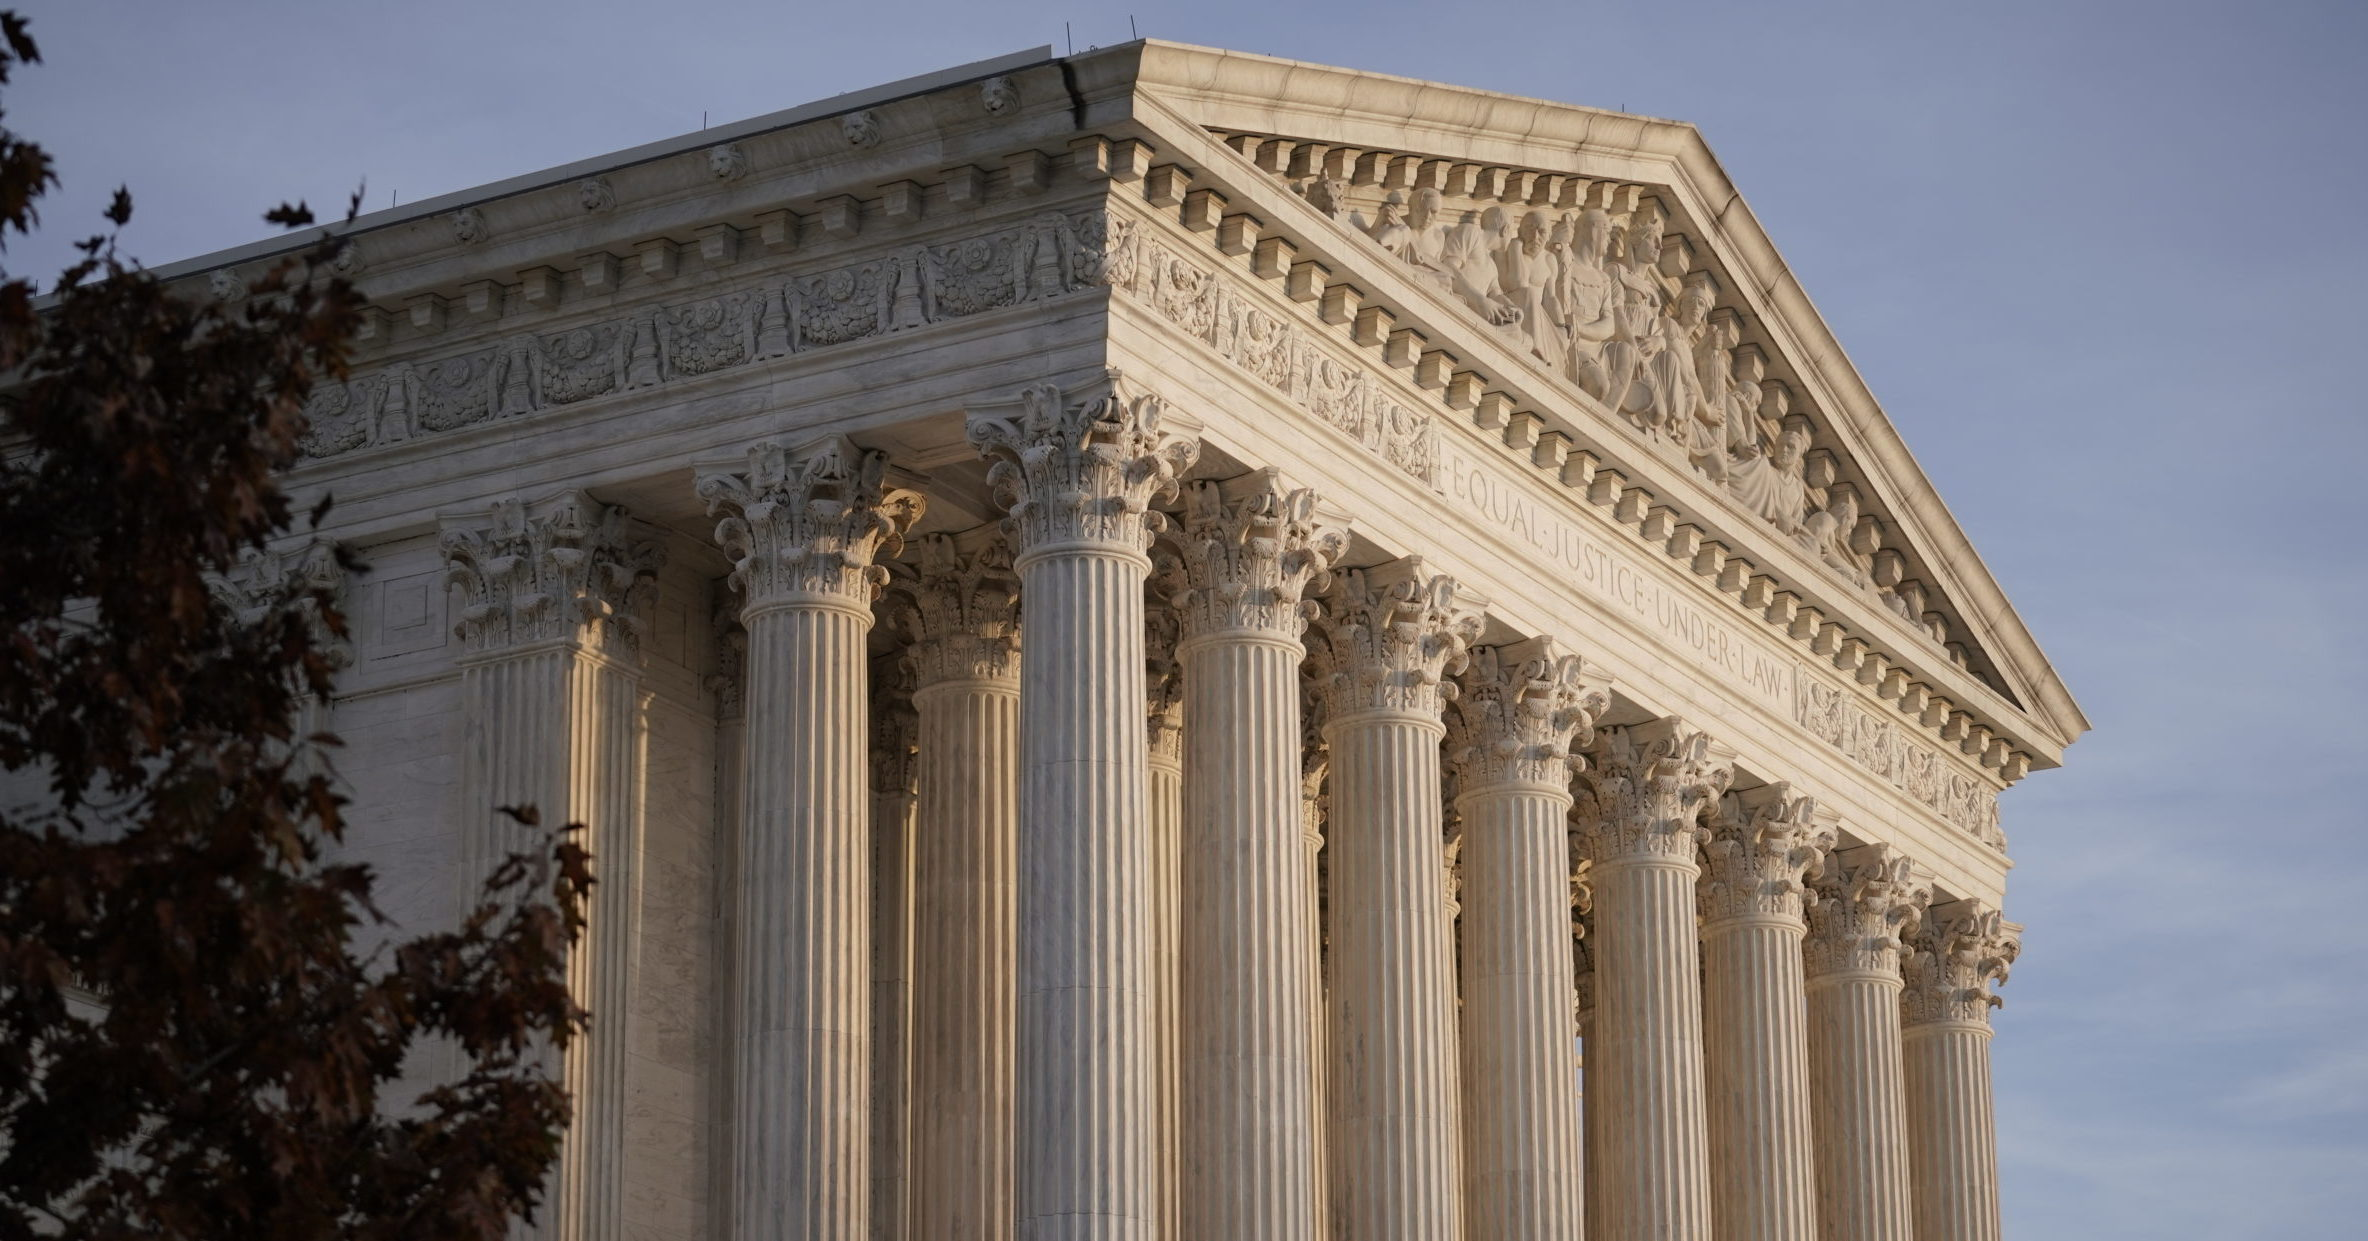 The Supreme Court is pictured in Washington, D.C.